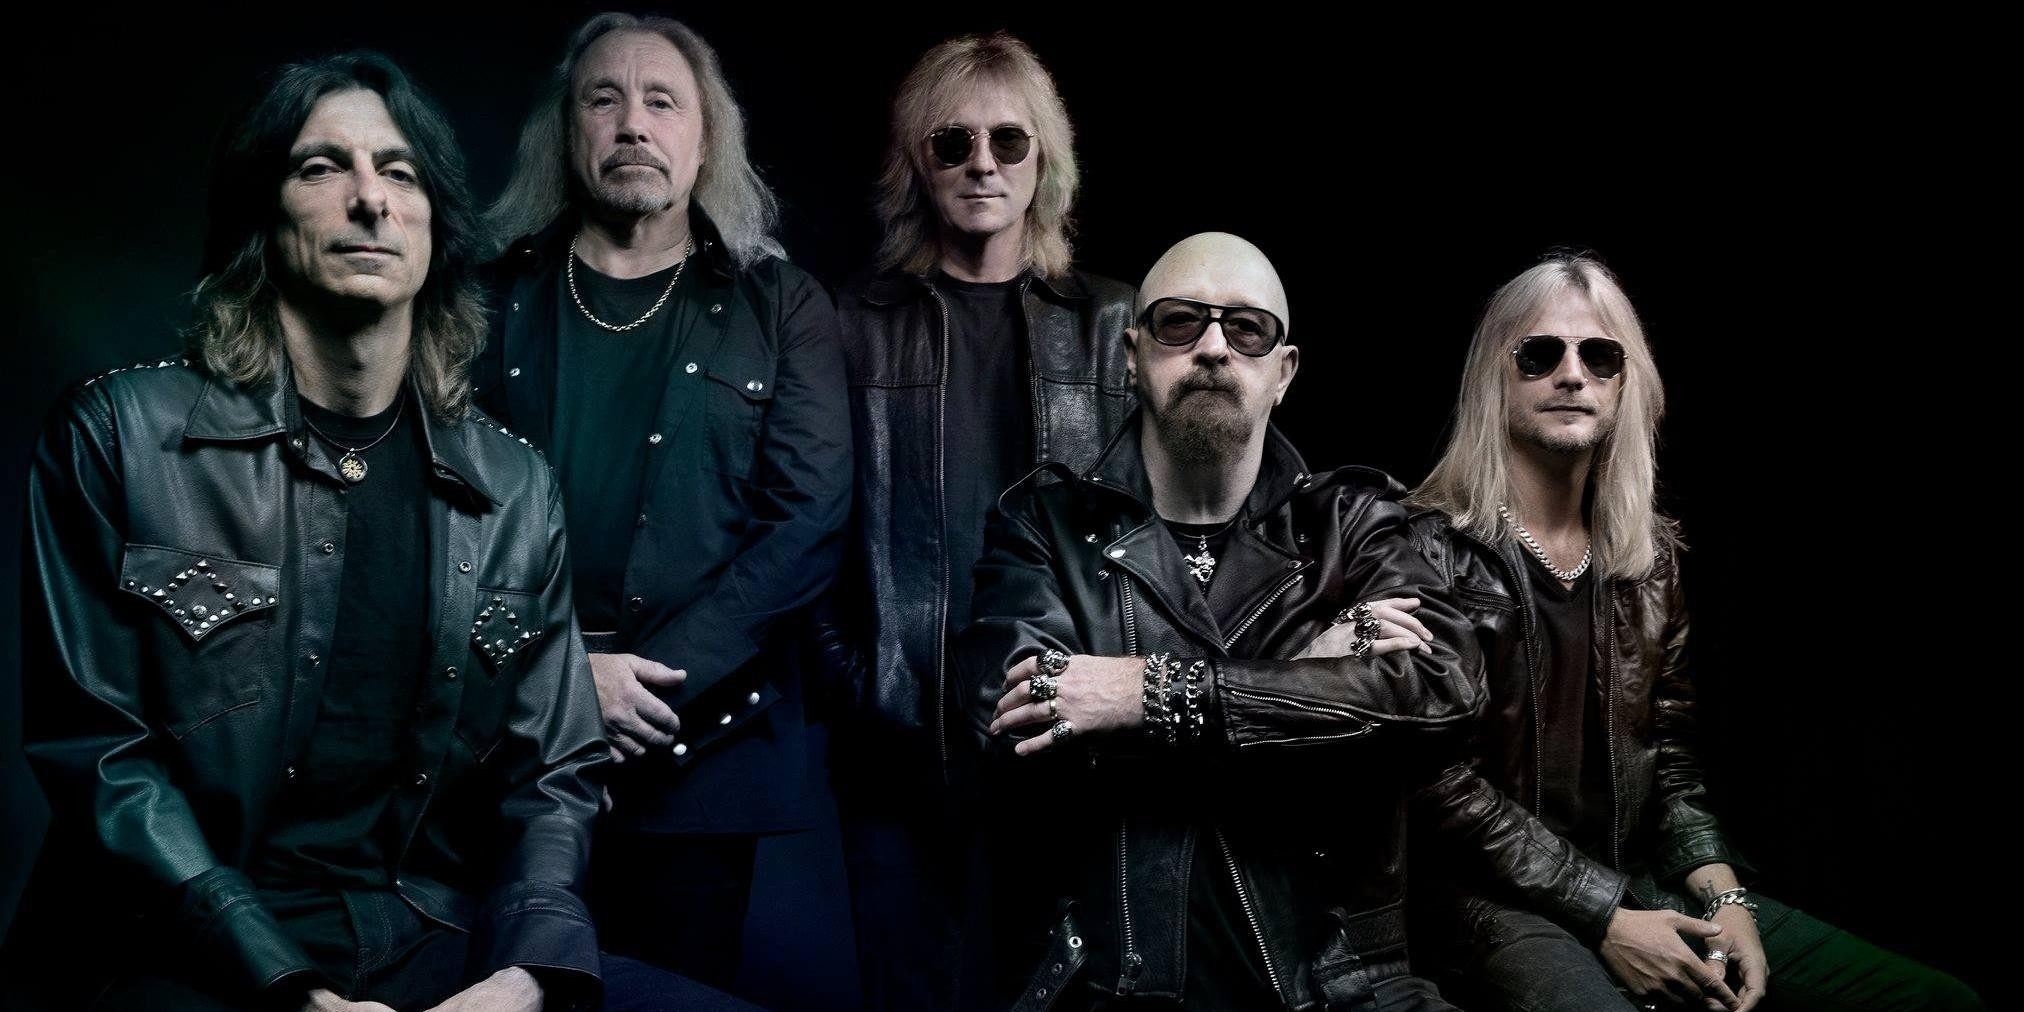 Judas Priest to perform in Singapore